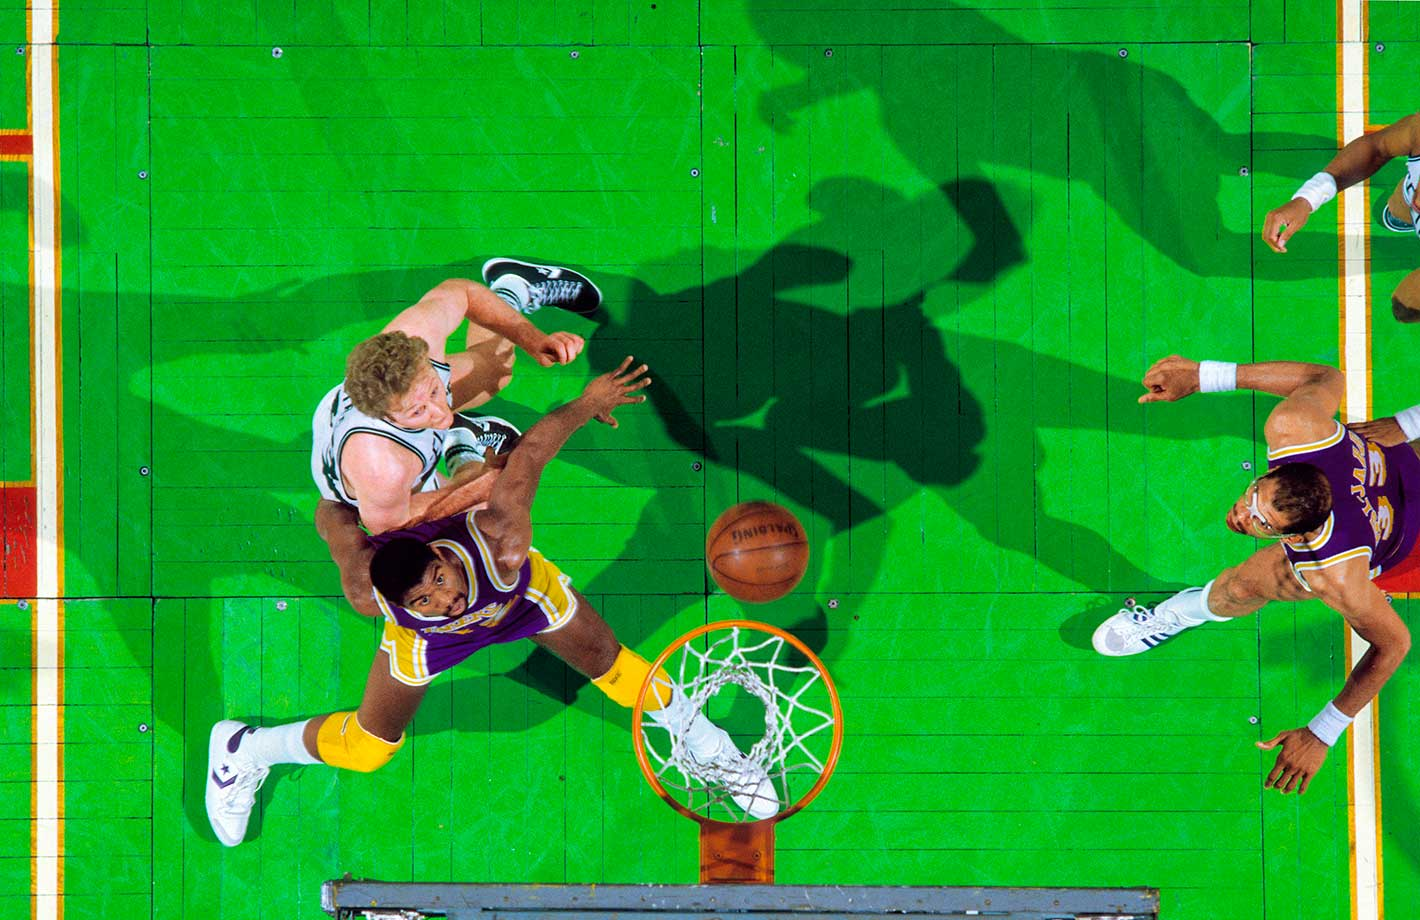 Boston Celtics great Larry Bird in action vs. Magic Johnson of the L.A. Lakers during Game 1 of the 1985 NBA Finals.